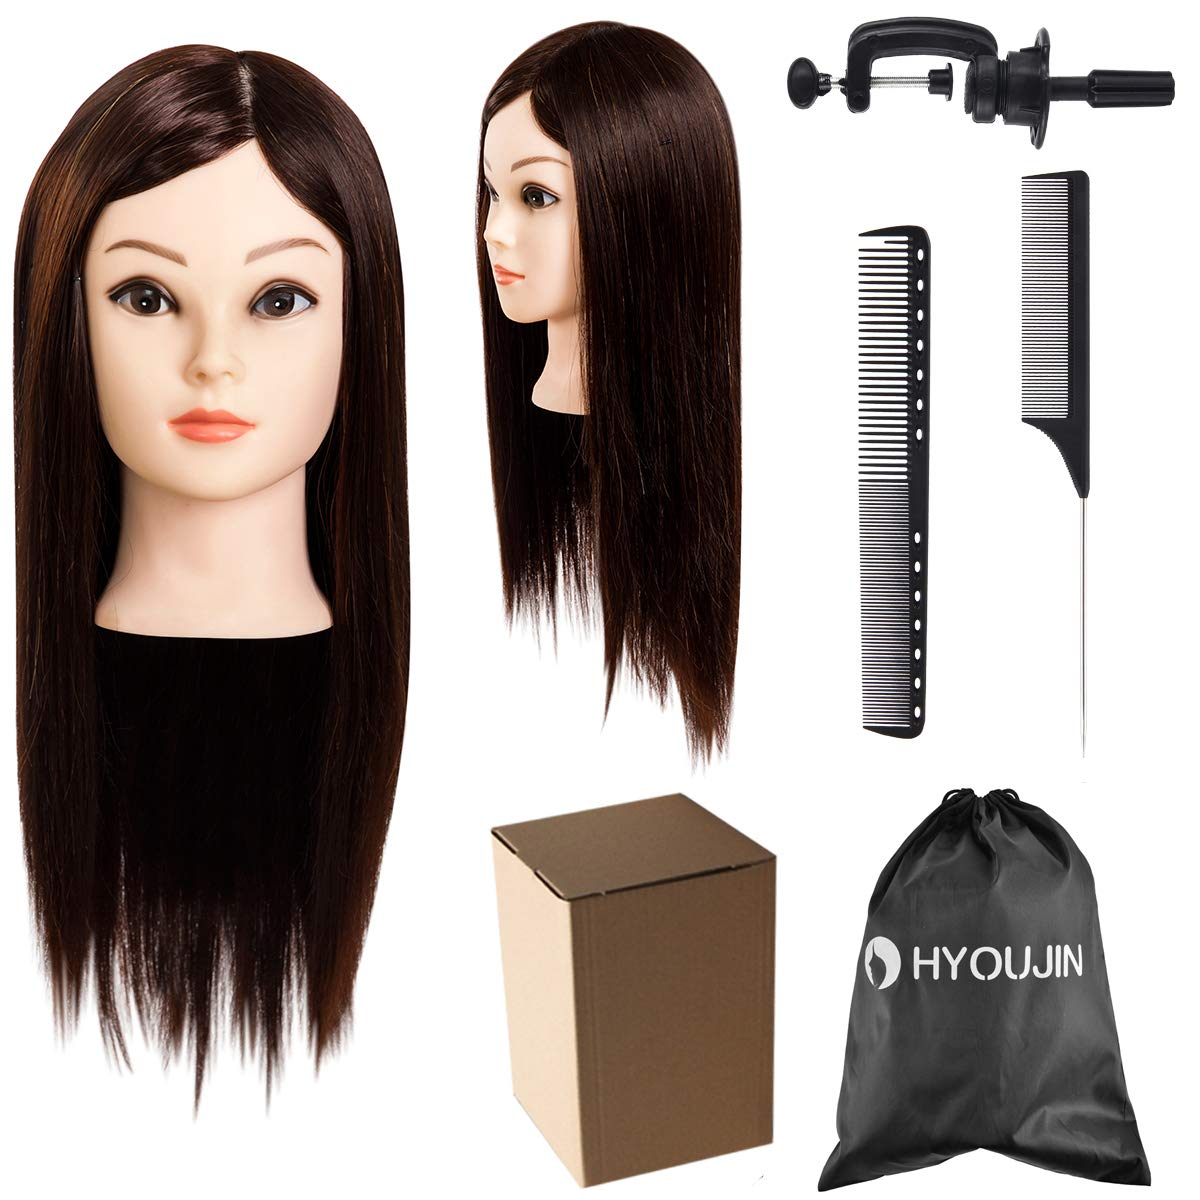 1502ad95440 HYOUJIN 70% Real Hair Cosmetology Training Head 21 inch Hairdresser  Mannequin Head with Clamp Styling